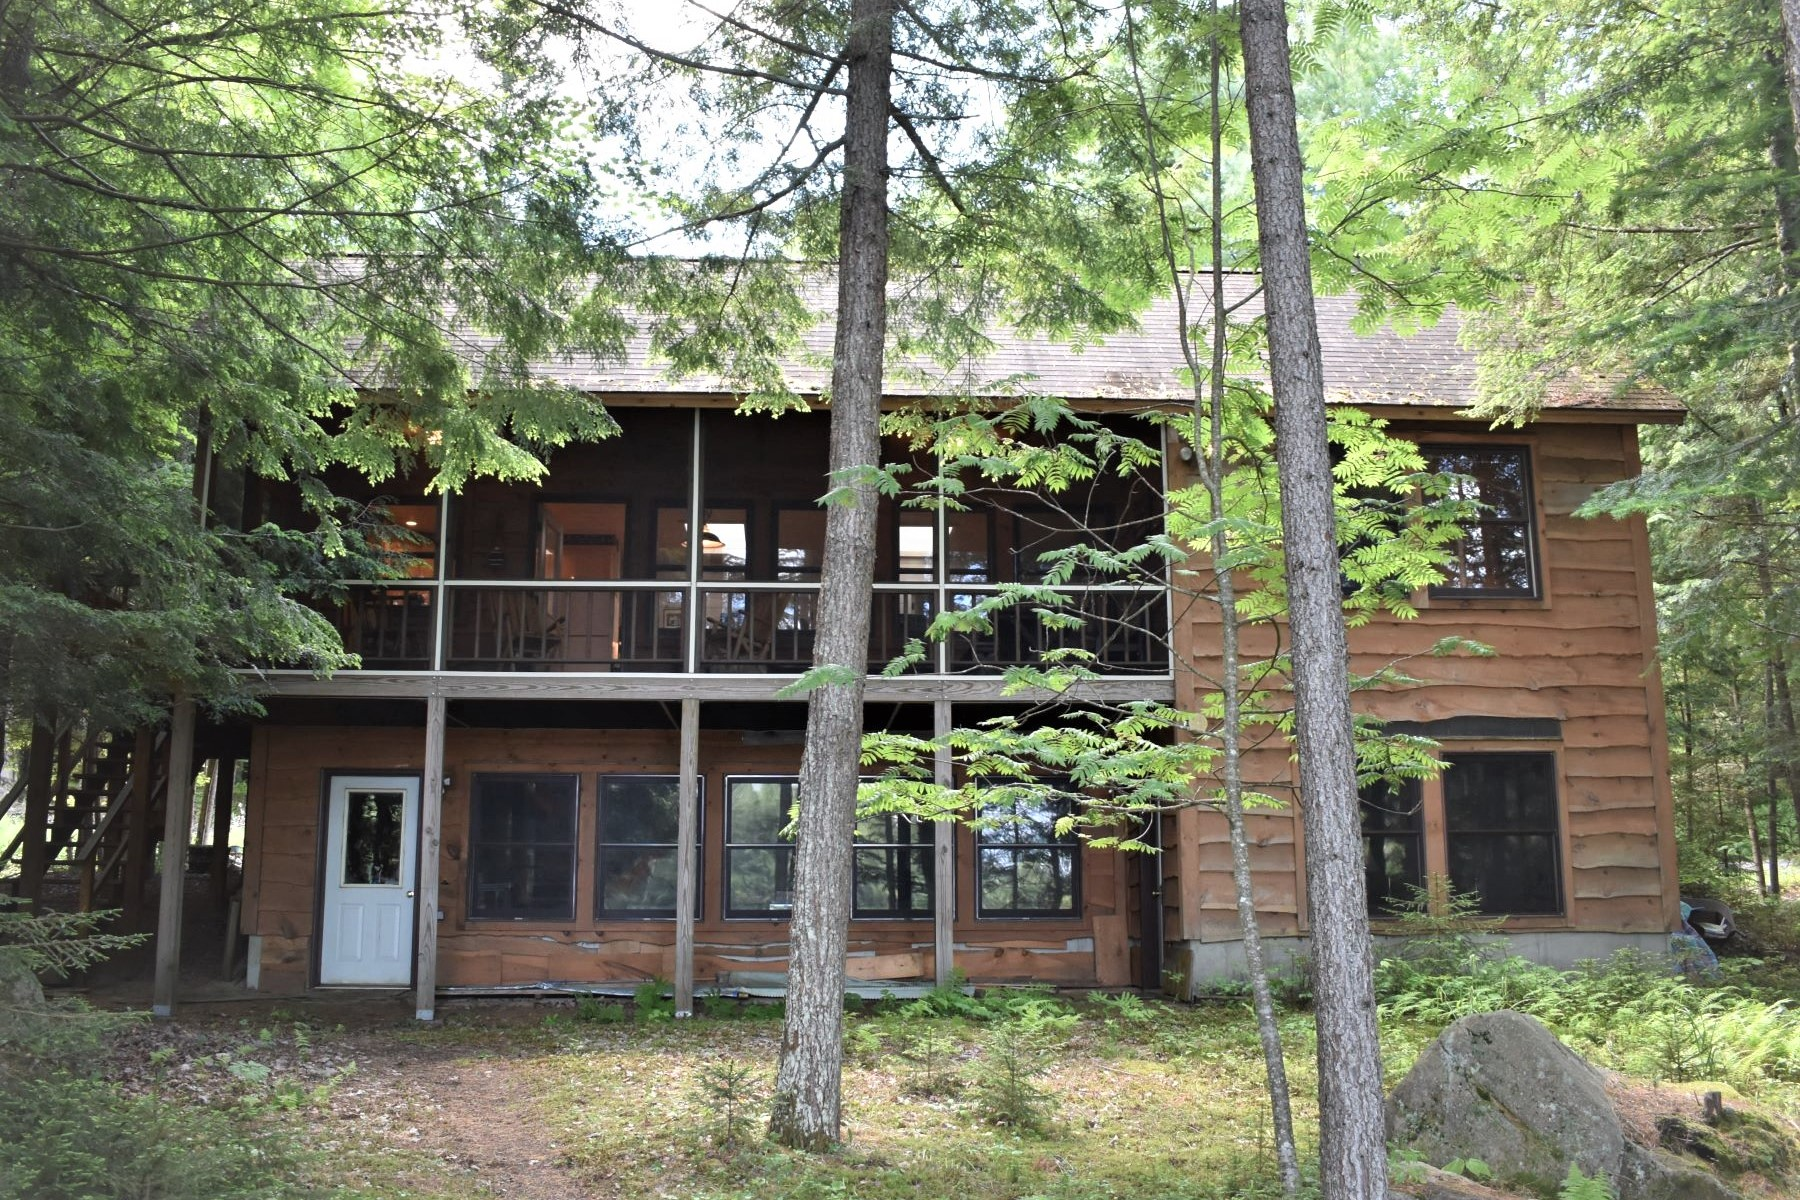 Single Family Homes for Sale at Charming Lake Eaton Cabin 156 Beecher Park Way Long Lake, New York 12847 United States